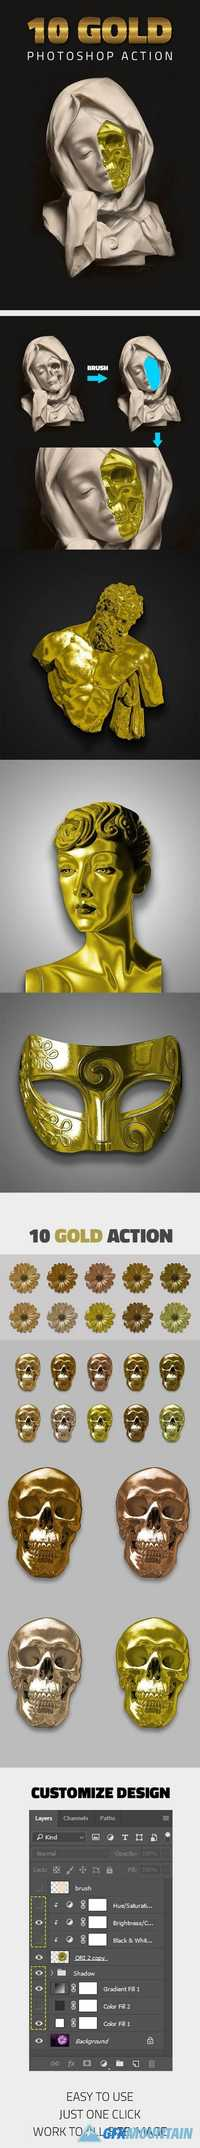 10 Gold Effect Photoshop Action 20460997